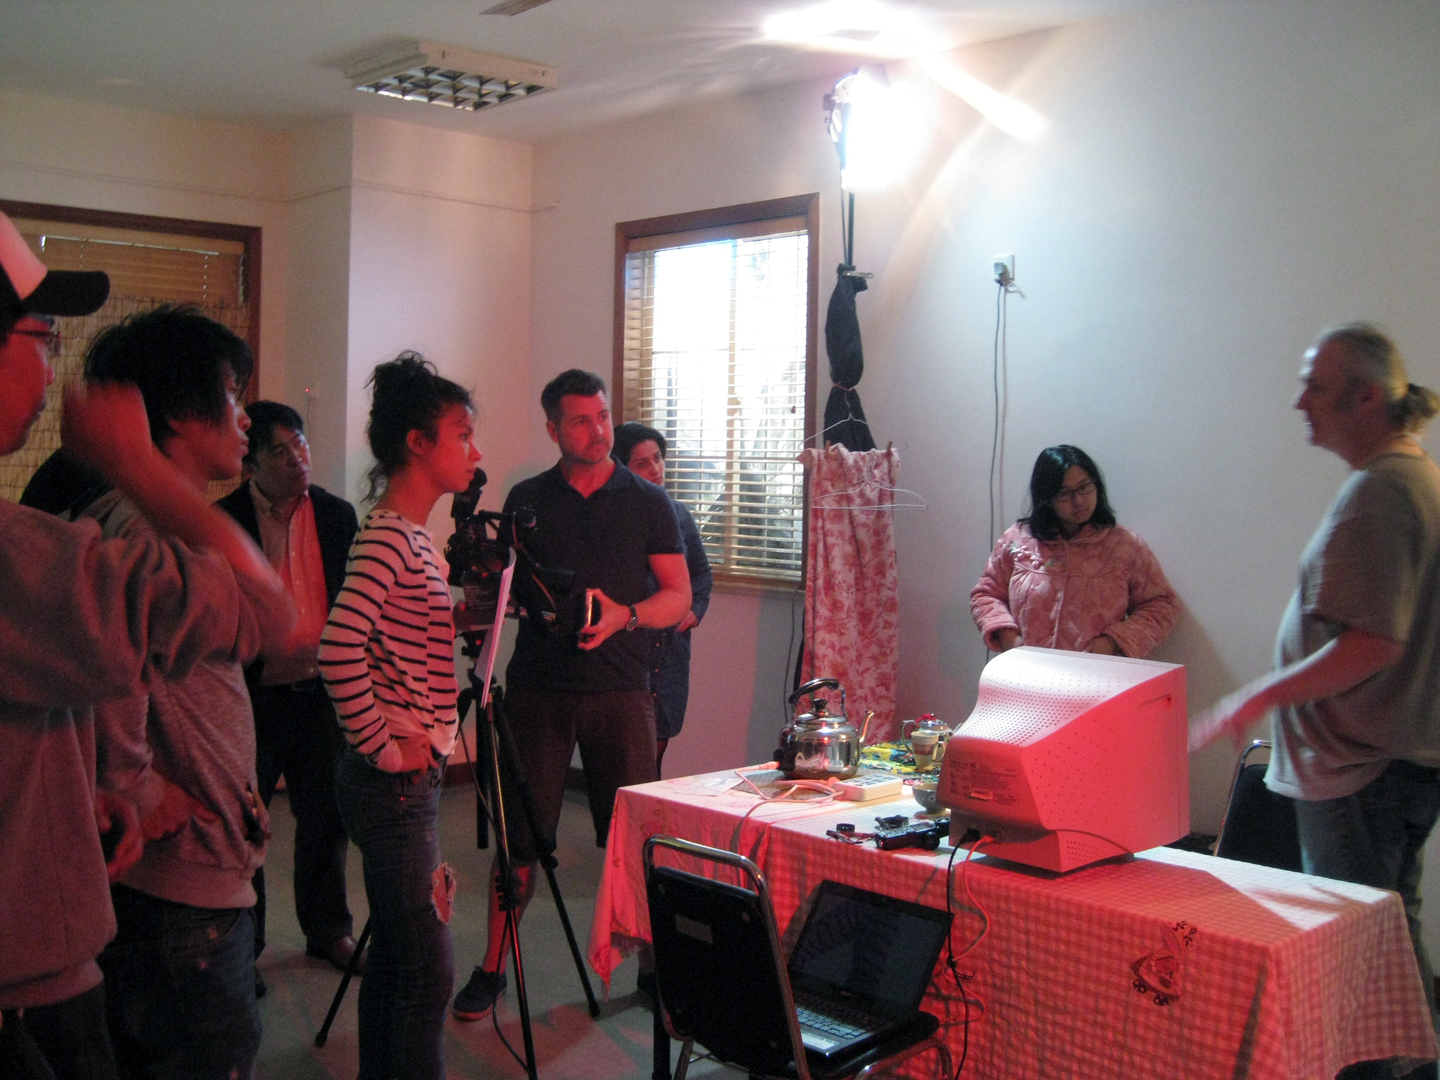 Watching TV set up with actors and assistants